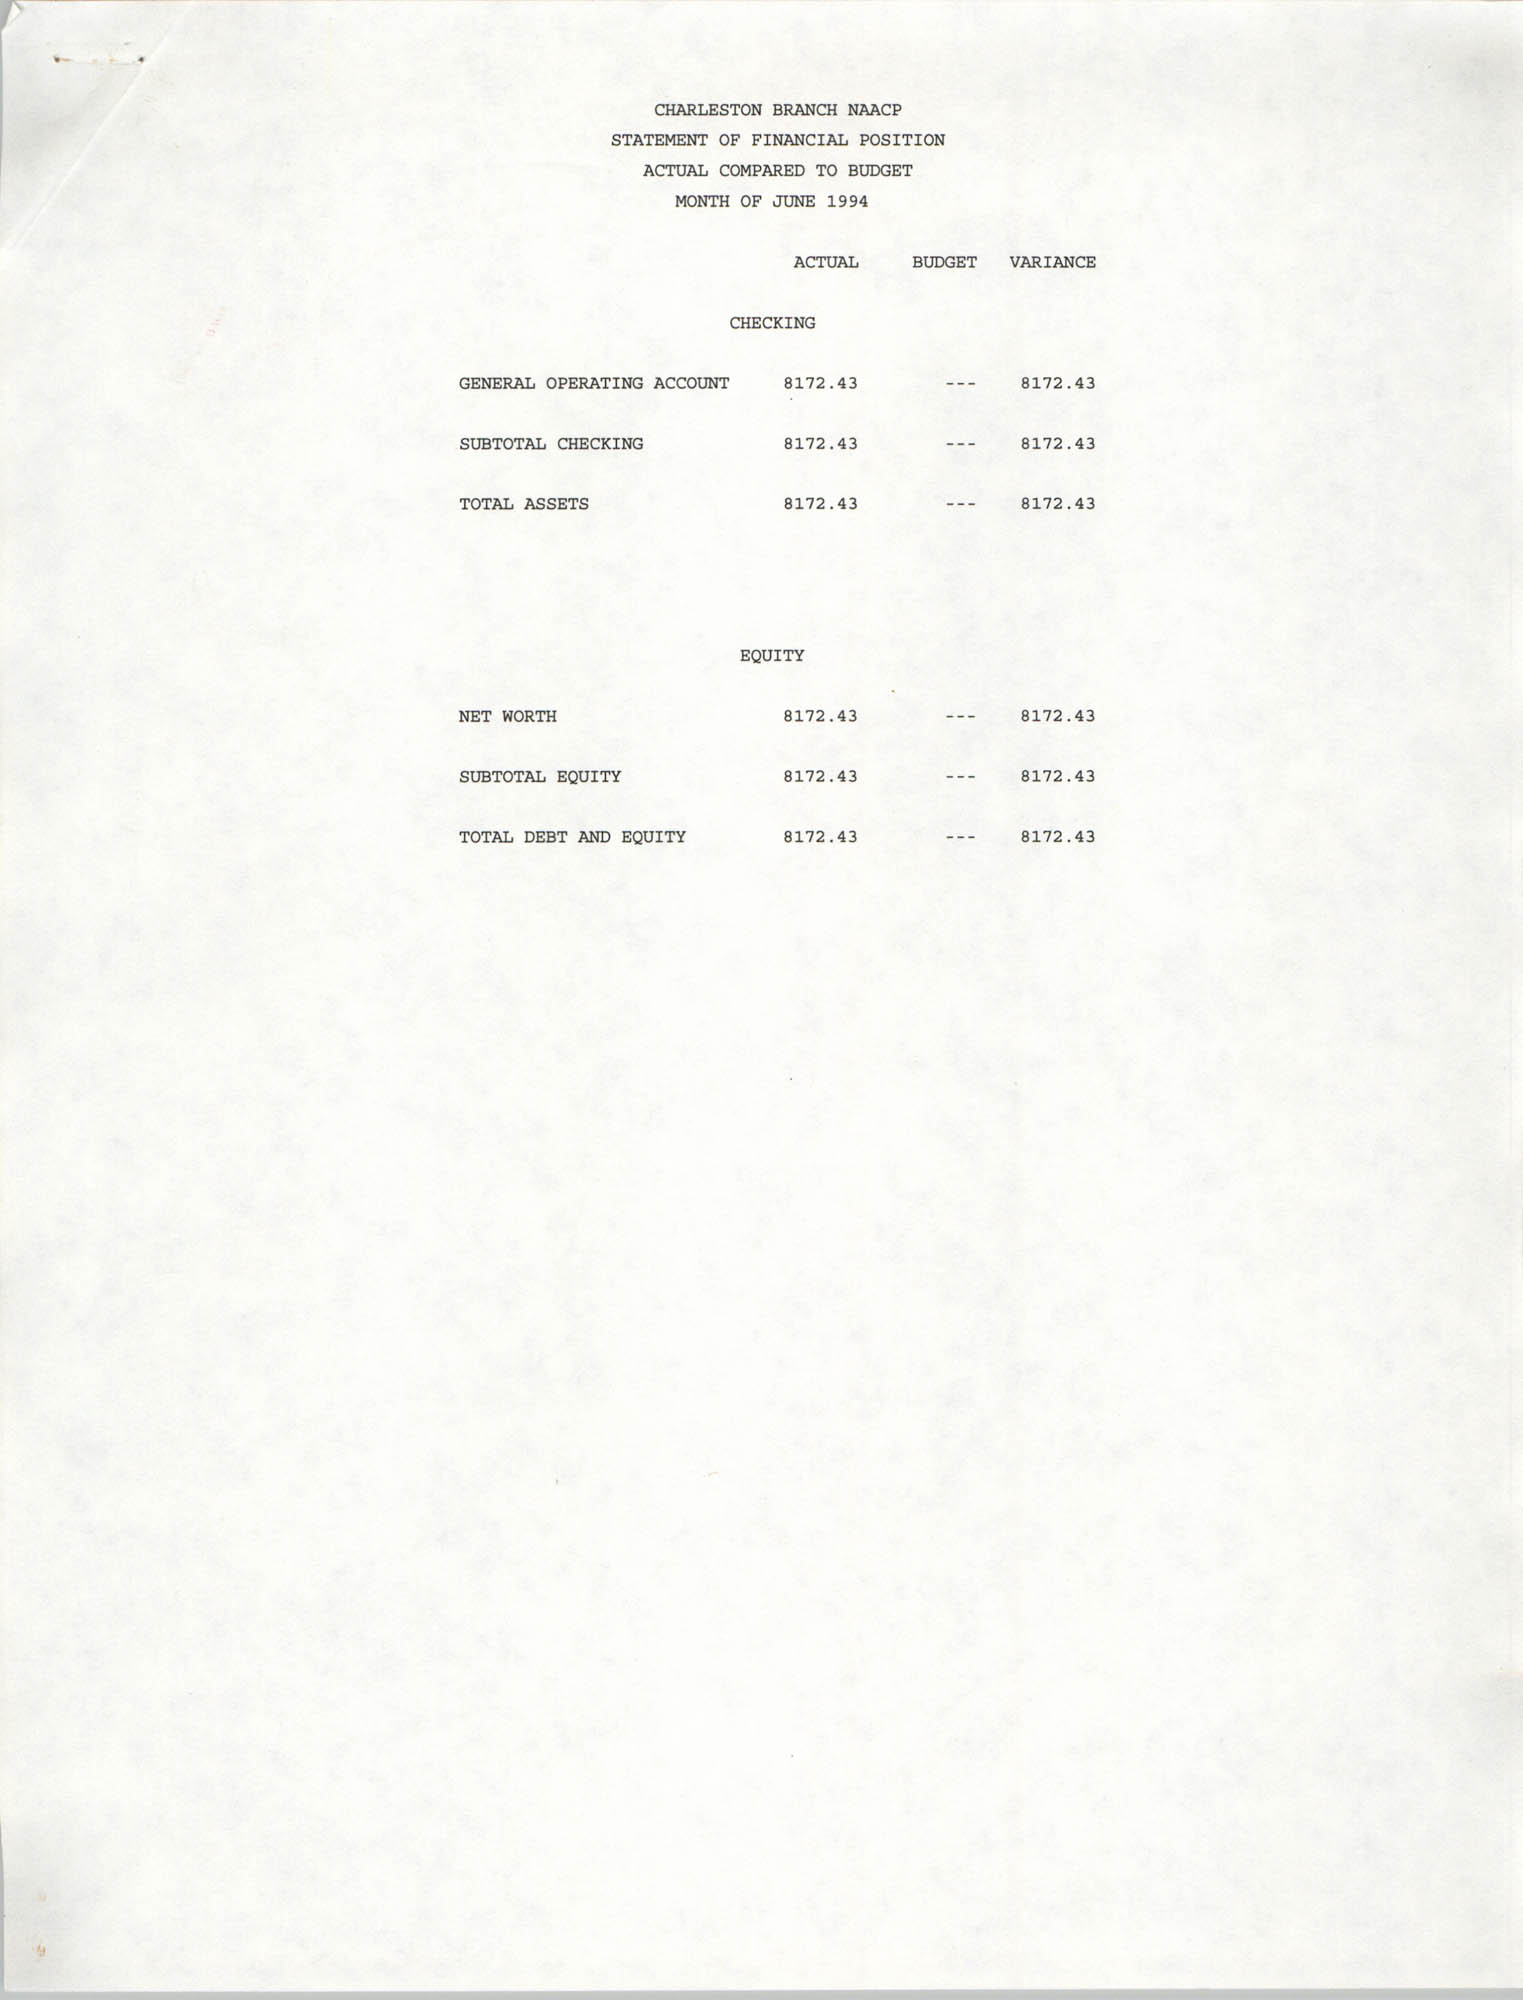 Charleston Branch of the NAACP Statement of Financial Position, June 1994